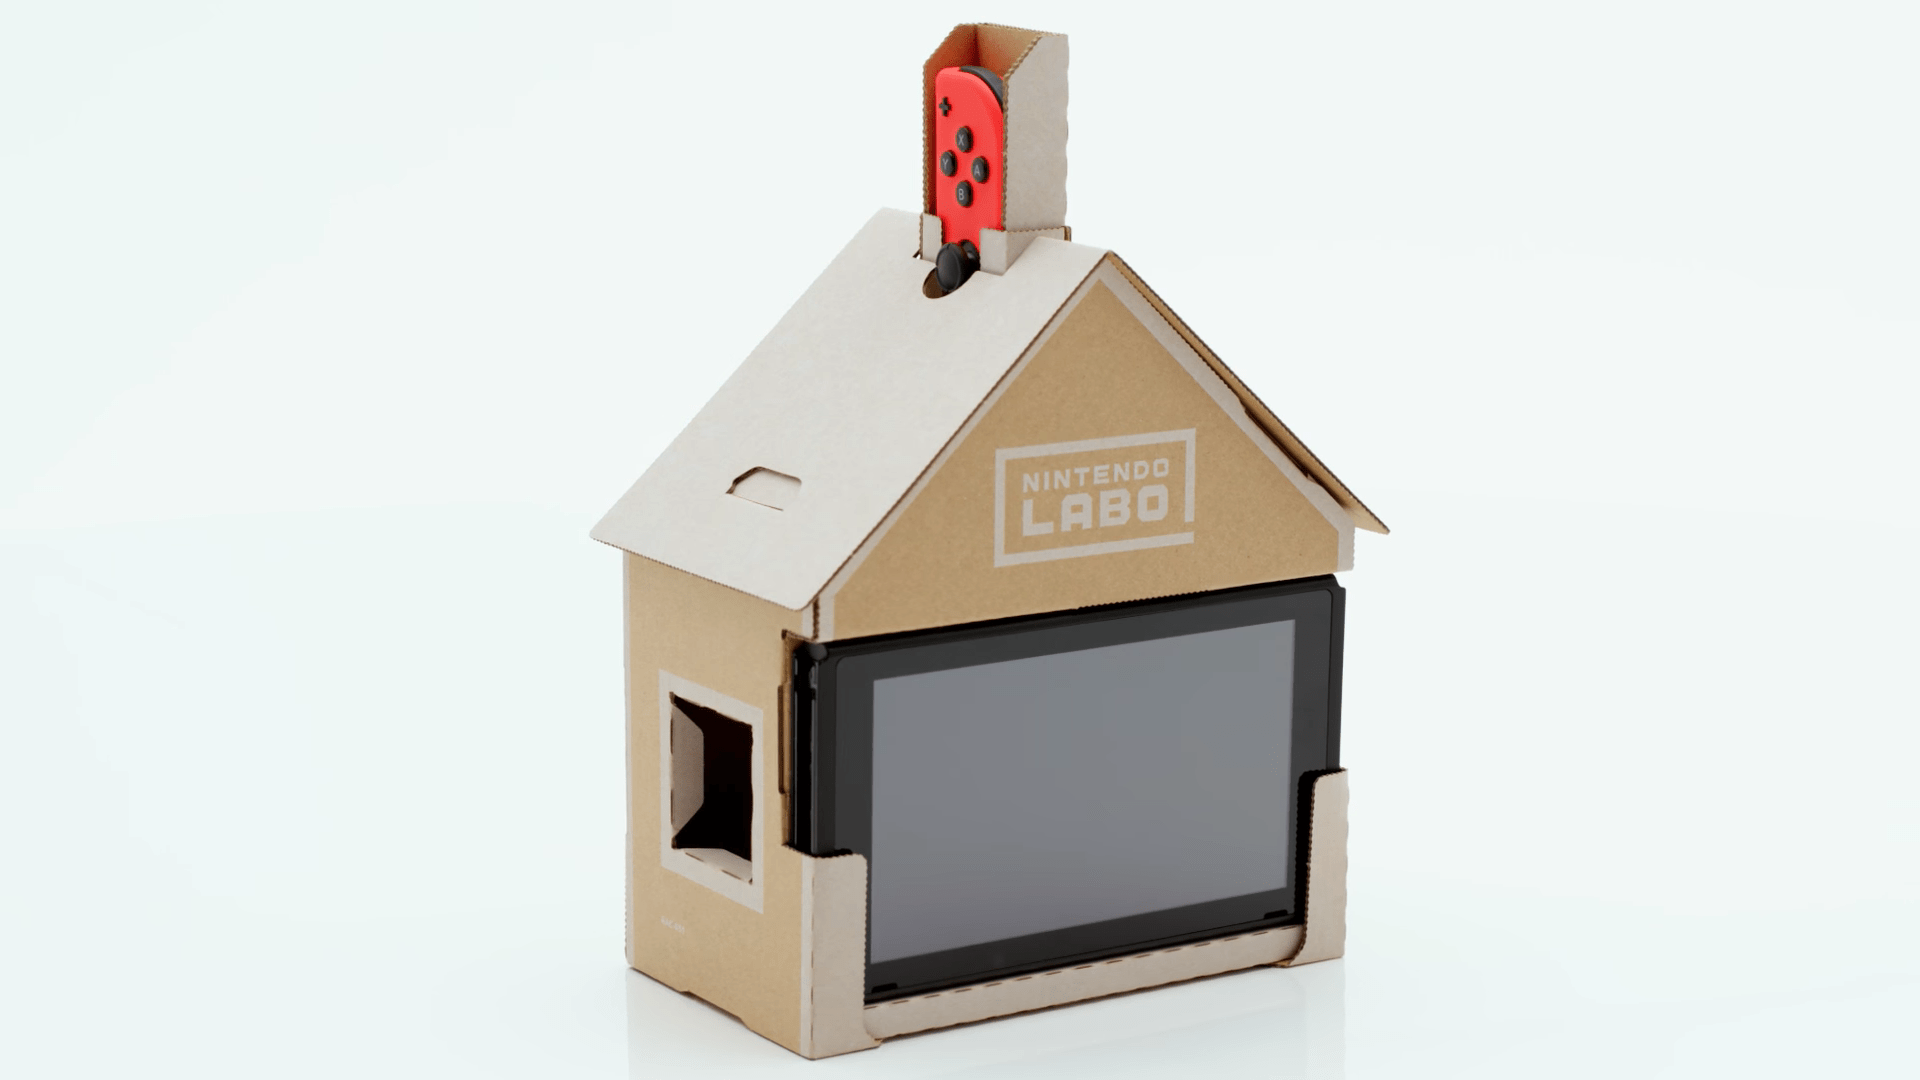 Nintendo showcased the breadth of its creations in the debut video for Labo — here, for instance, is a little house. What?